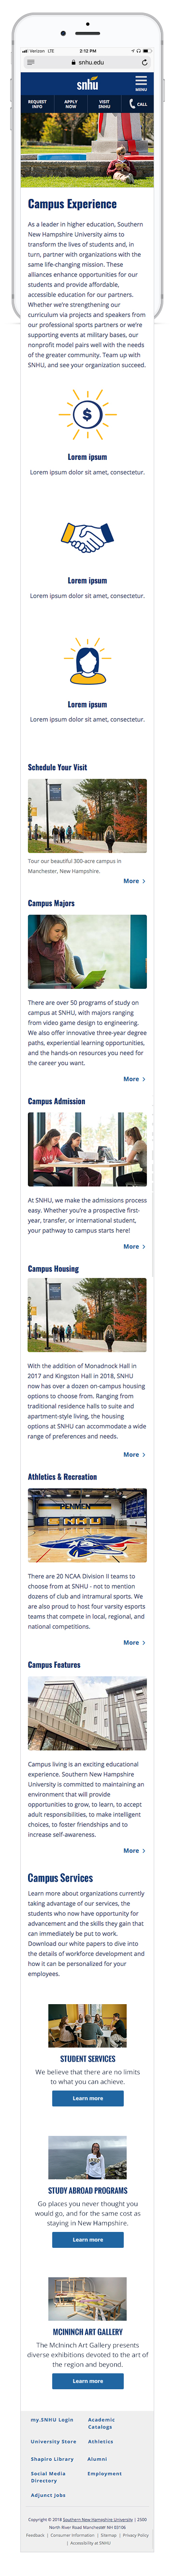 1413-campus-experience-page-mobile-phase1-mockup_V1.jpg